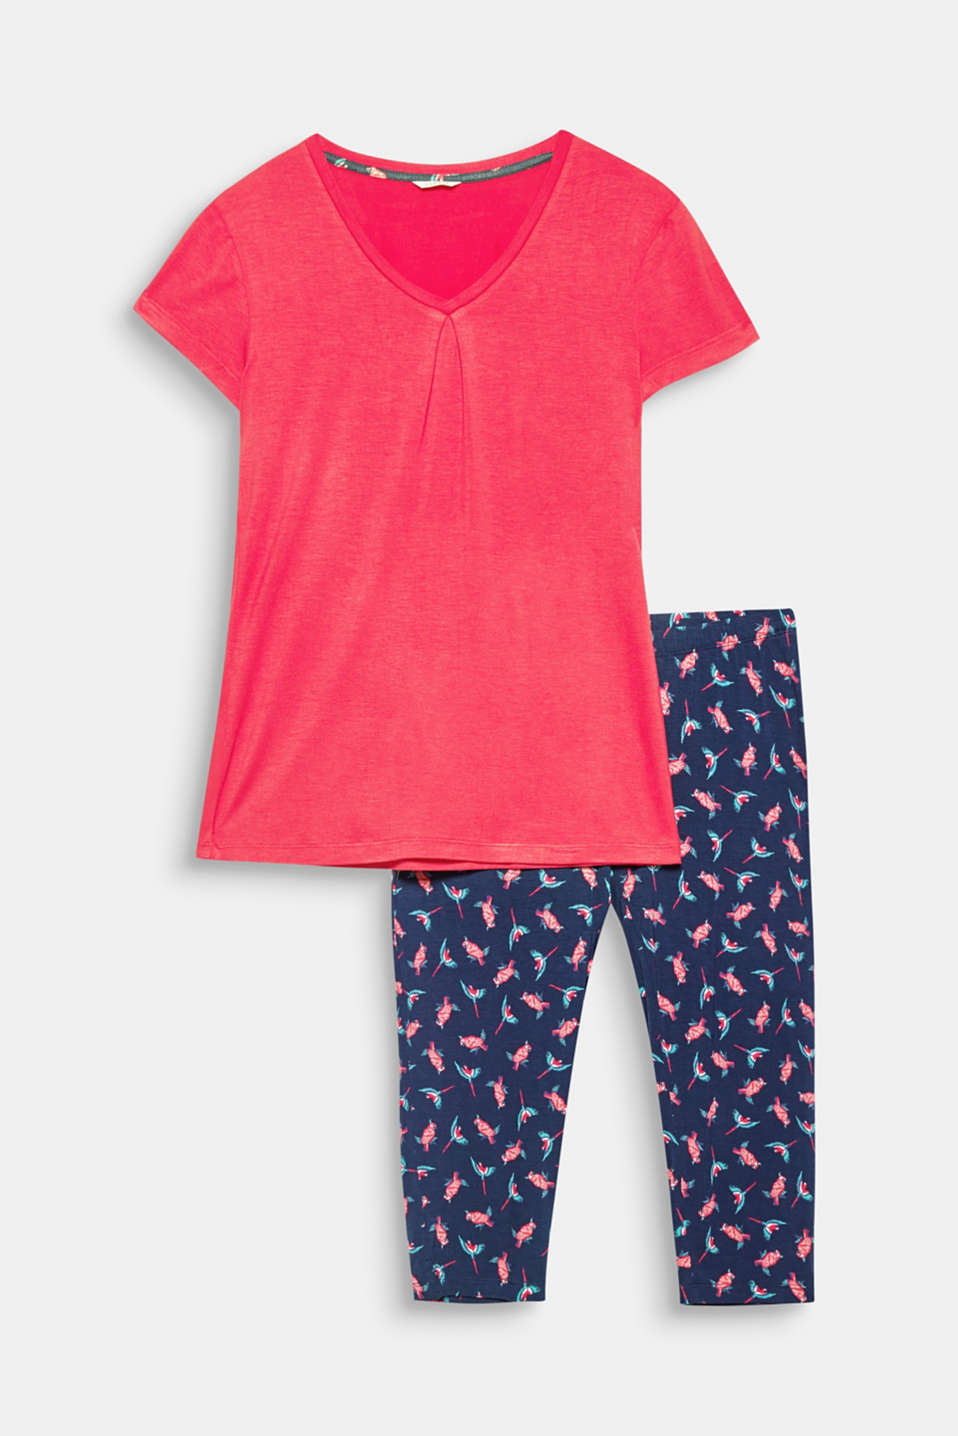 These pyjamas with a plain coloured V-neck top and capri bottoms with a parrot print are lightweight, soft and summery!